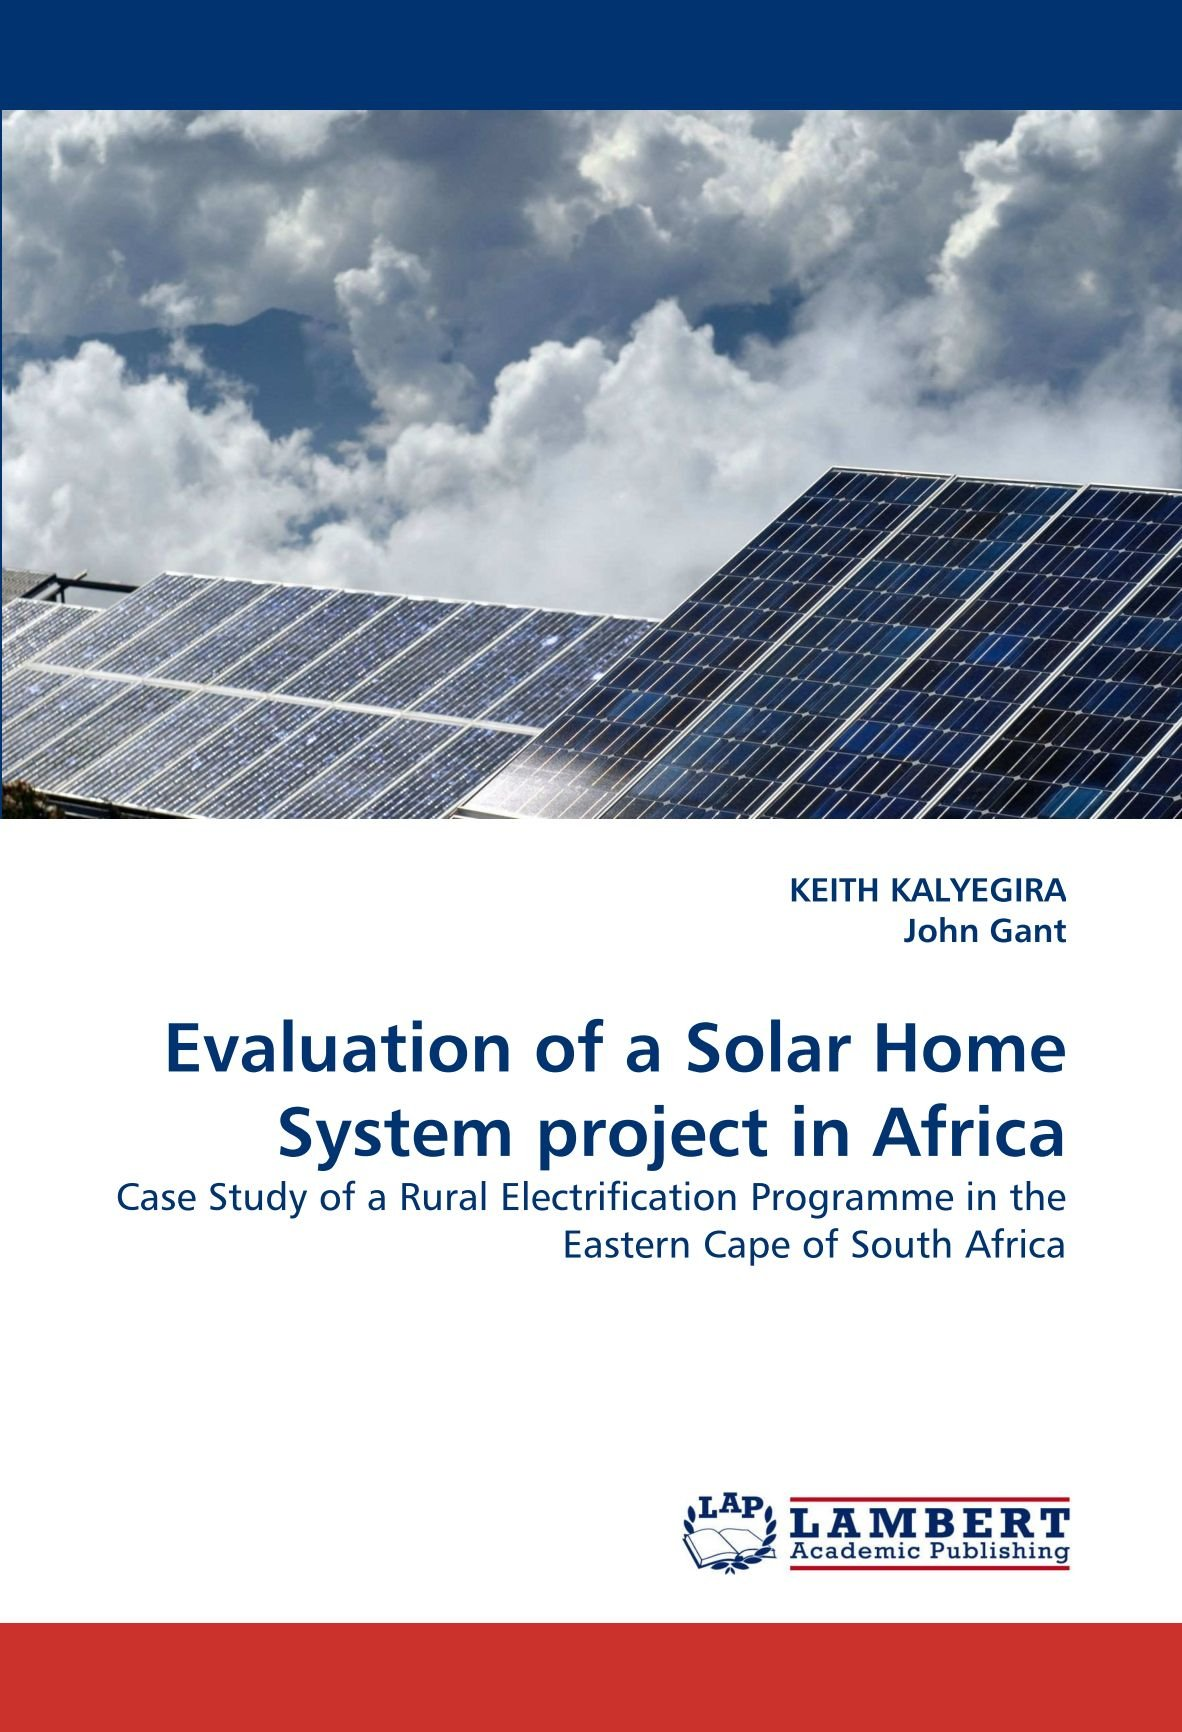 Download Evaluation of a Solar Home System project in Africa: Case Study of a Rural Electrification Programme in the Eastern Cape of South Africa pdf